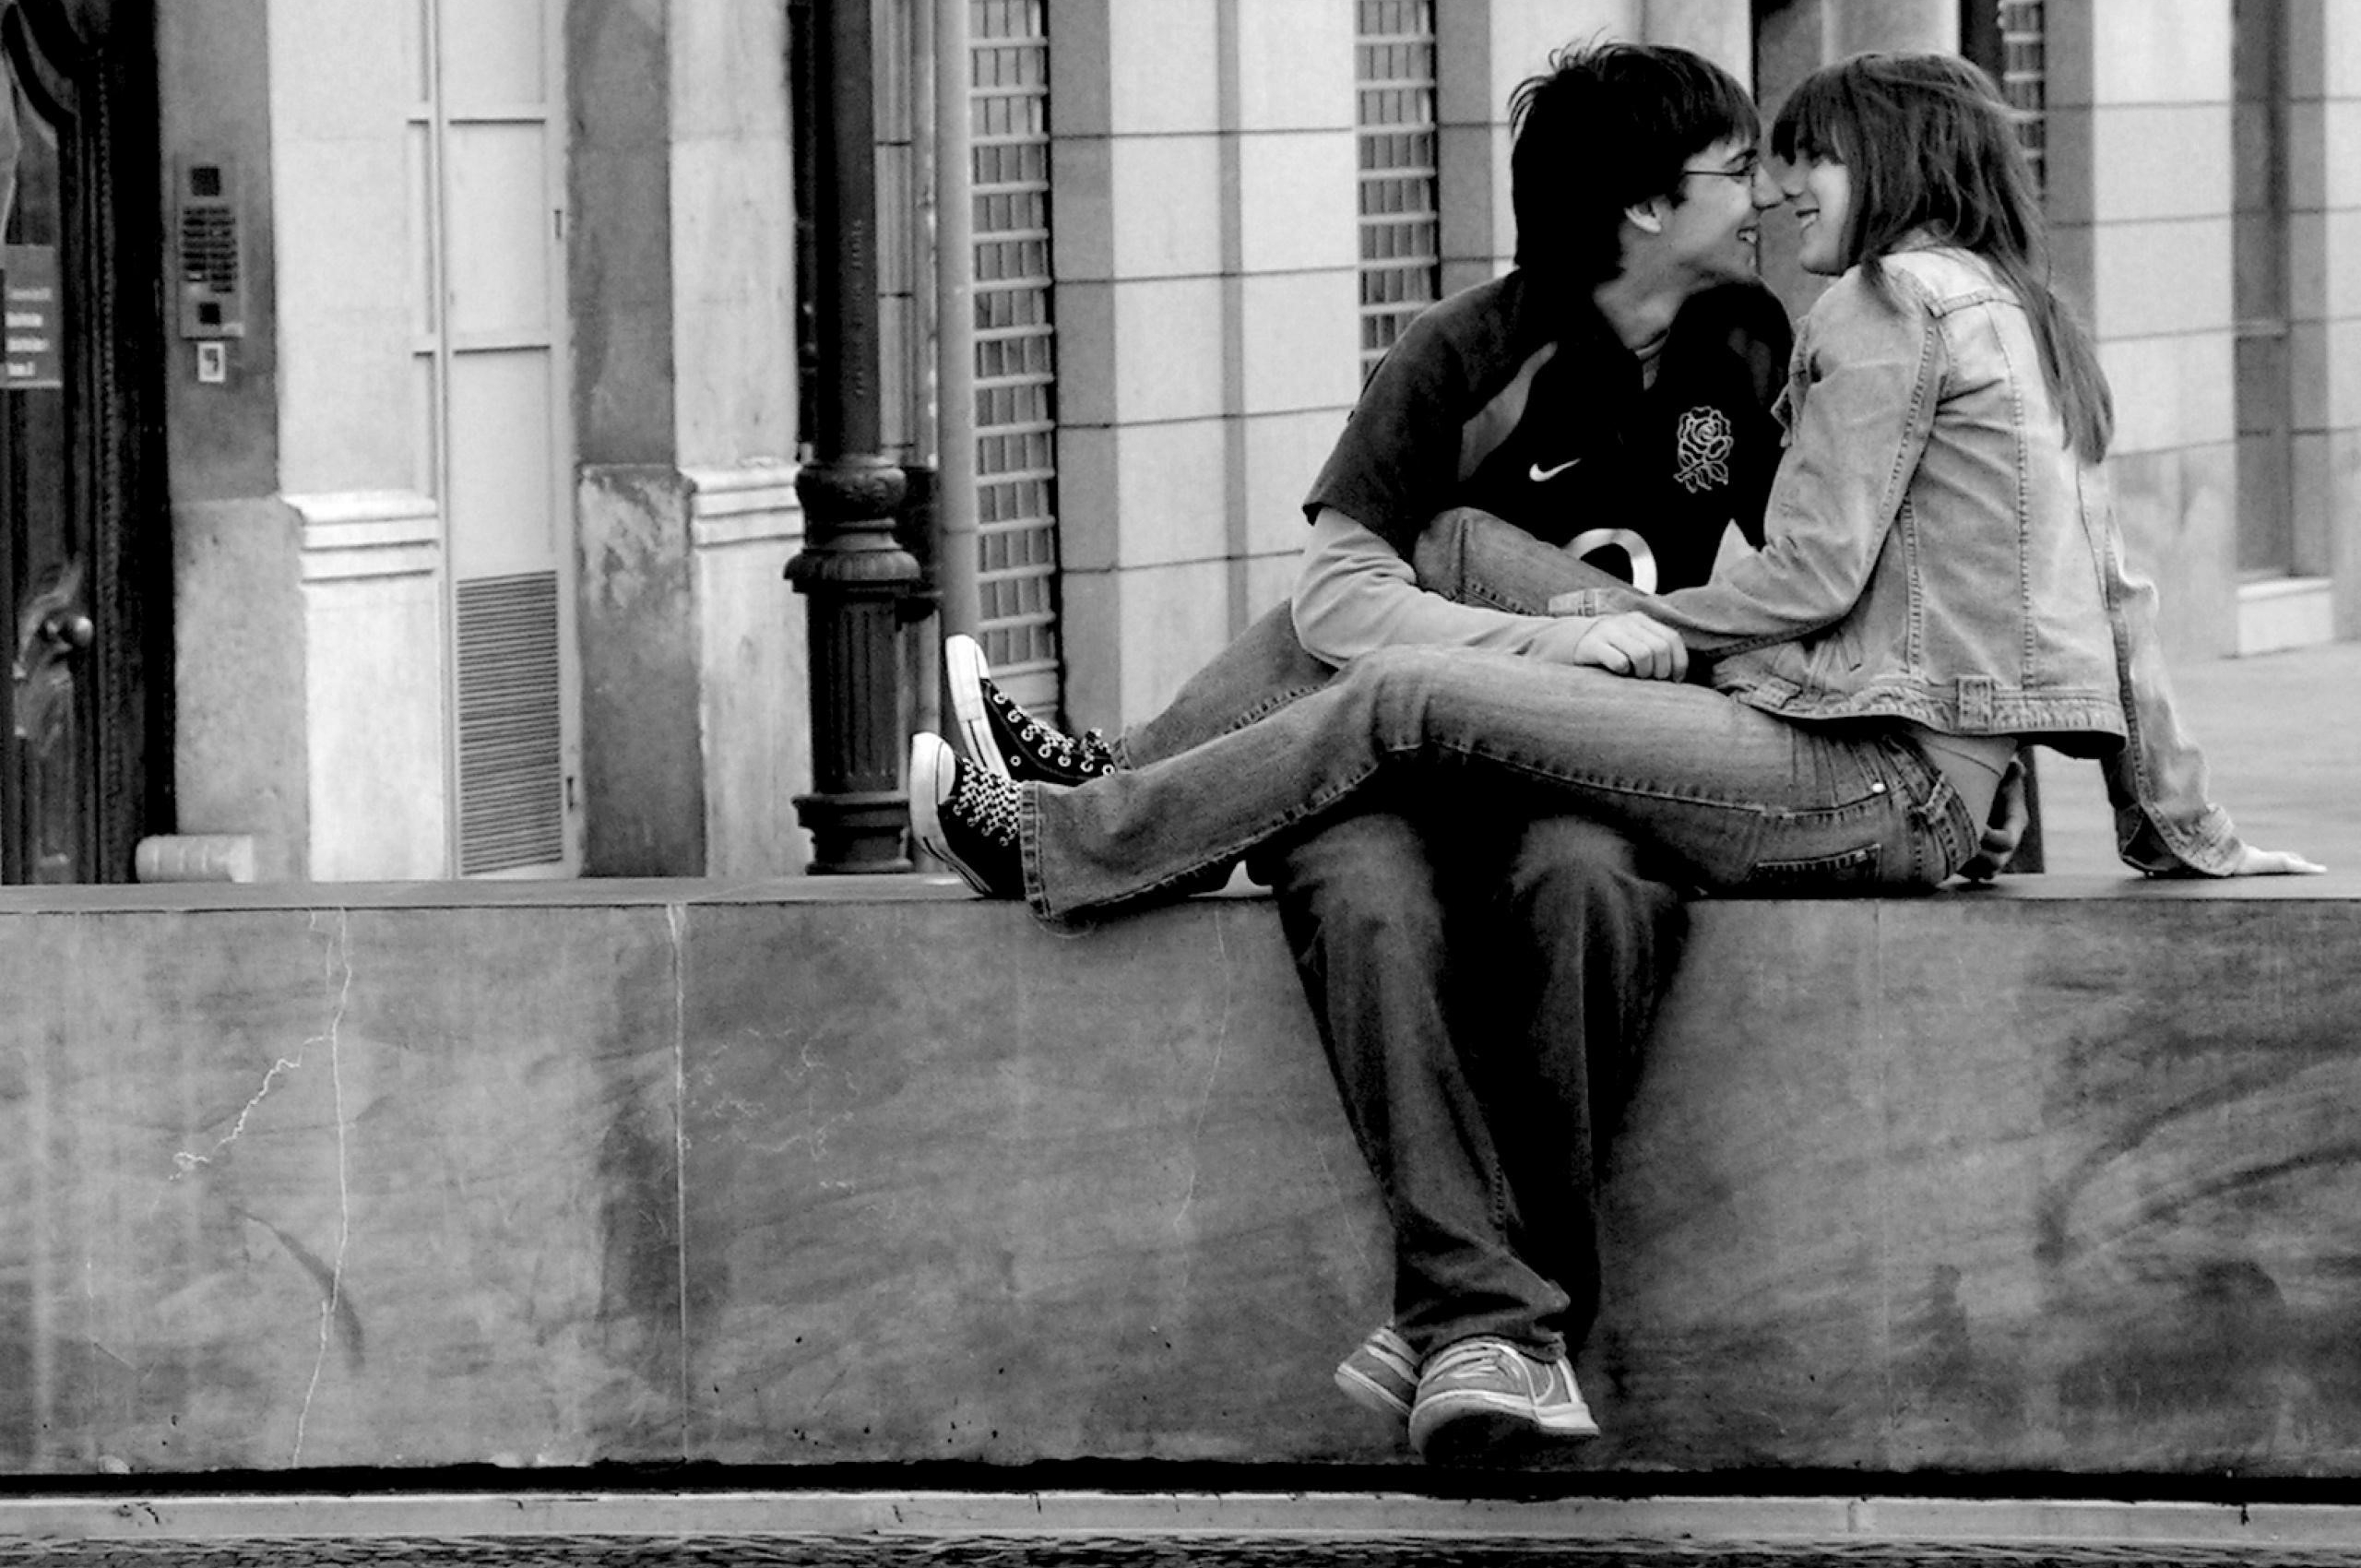 Free Download Romantic Couple Love Black And White Wallpaper Hd Wallpapers 2560x1920 For Your Desktop Mobile Tablet Explore 78 Black Love Wallpaper Love Pictures Wallpapers Love Backgrounds Wallpaper Free Love Wallpaper Love, anime, couple, hd, wallpapers name : free download romantic couple love